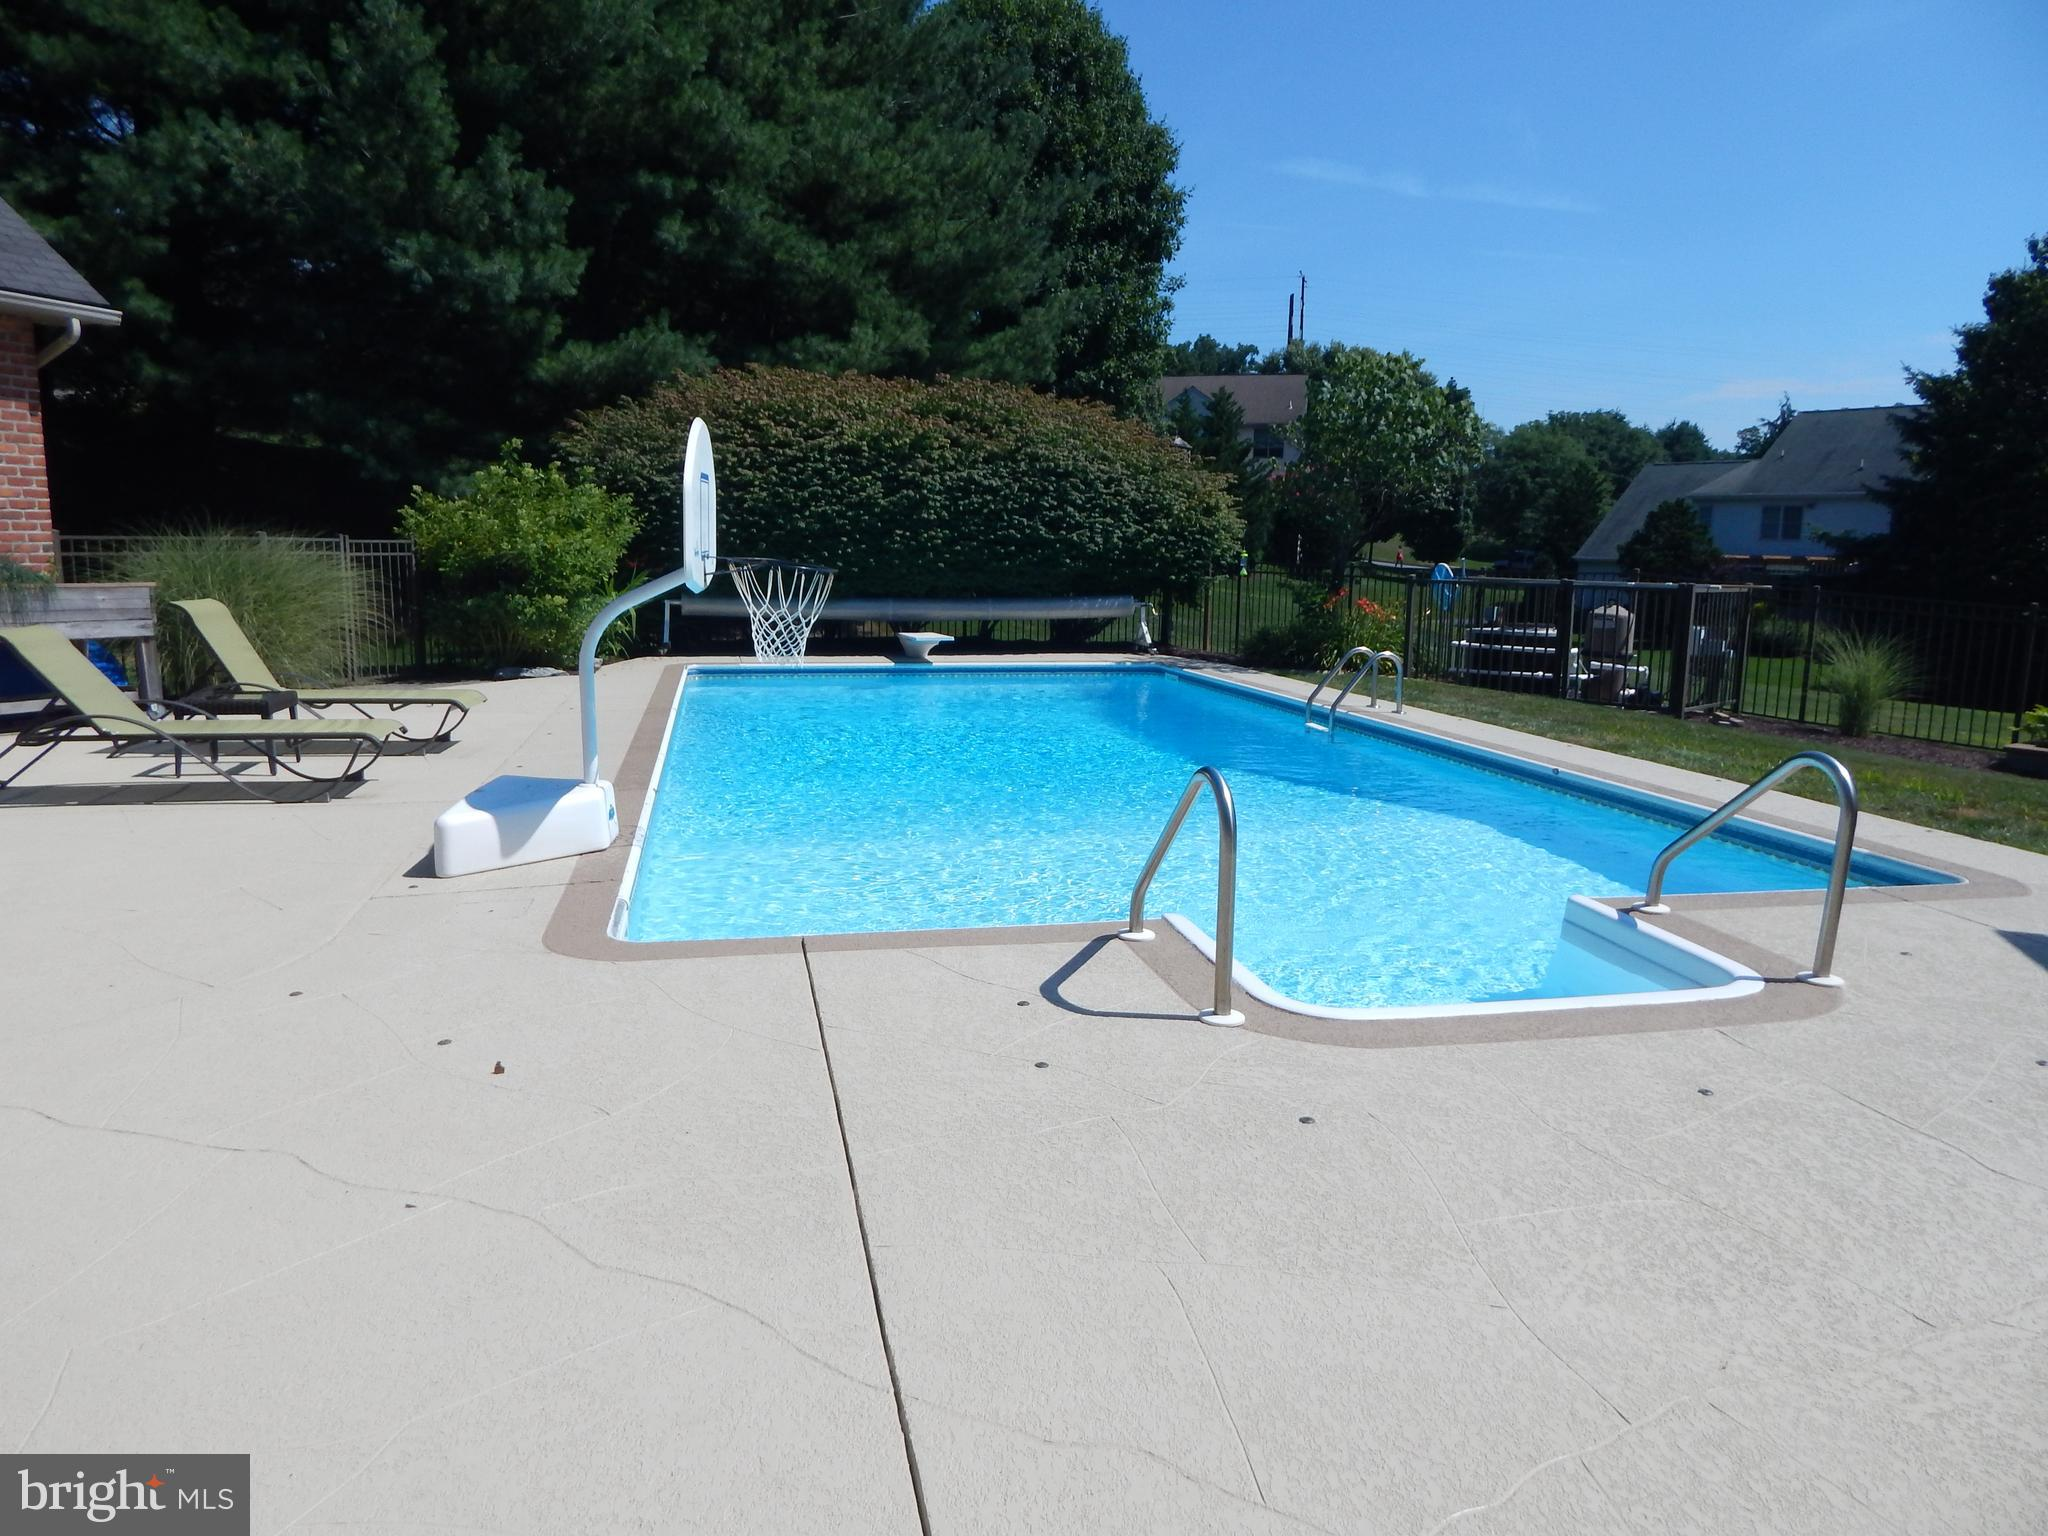 New summer photos of pool area